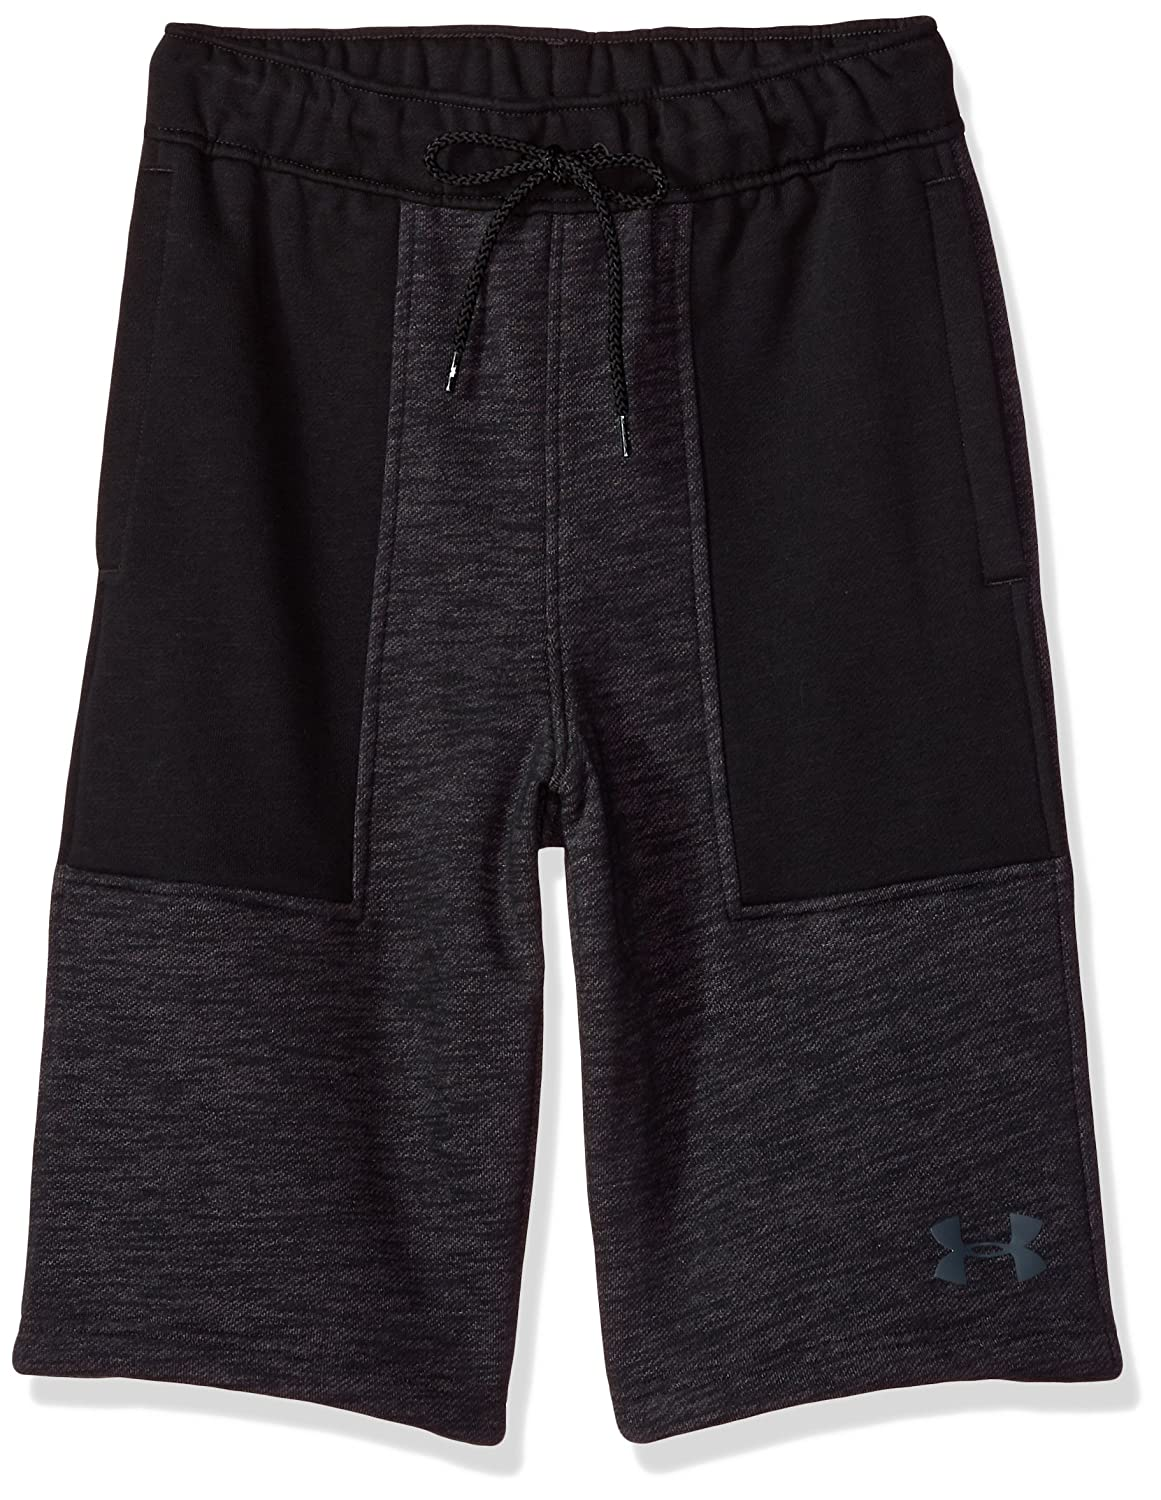 Under Armour Men's Baseline Fleece Shorts Under Armour Apparel 1309847